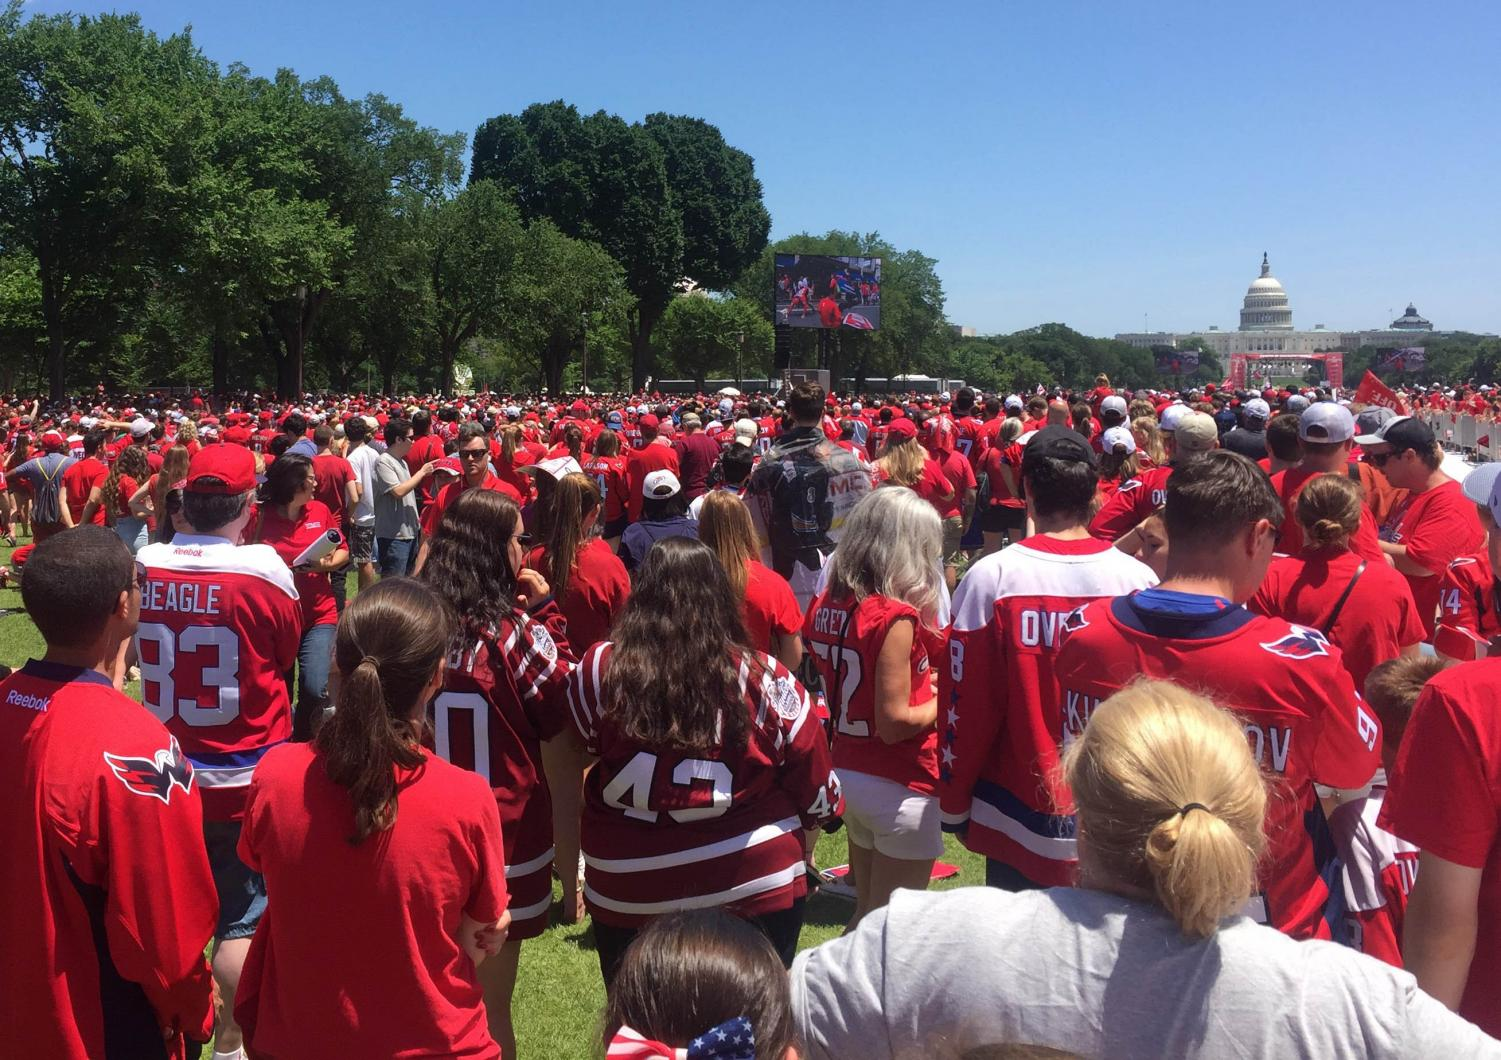 On the one-year anniversary of the Washington Capitals' Stanley Cup title, here's a Cap(s)tion. Thousands of fans celebrate their teams' victory in this Capitals capitol event. Photo courtesy Brielle Ohana.